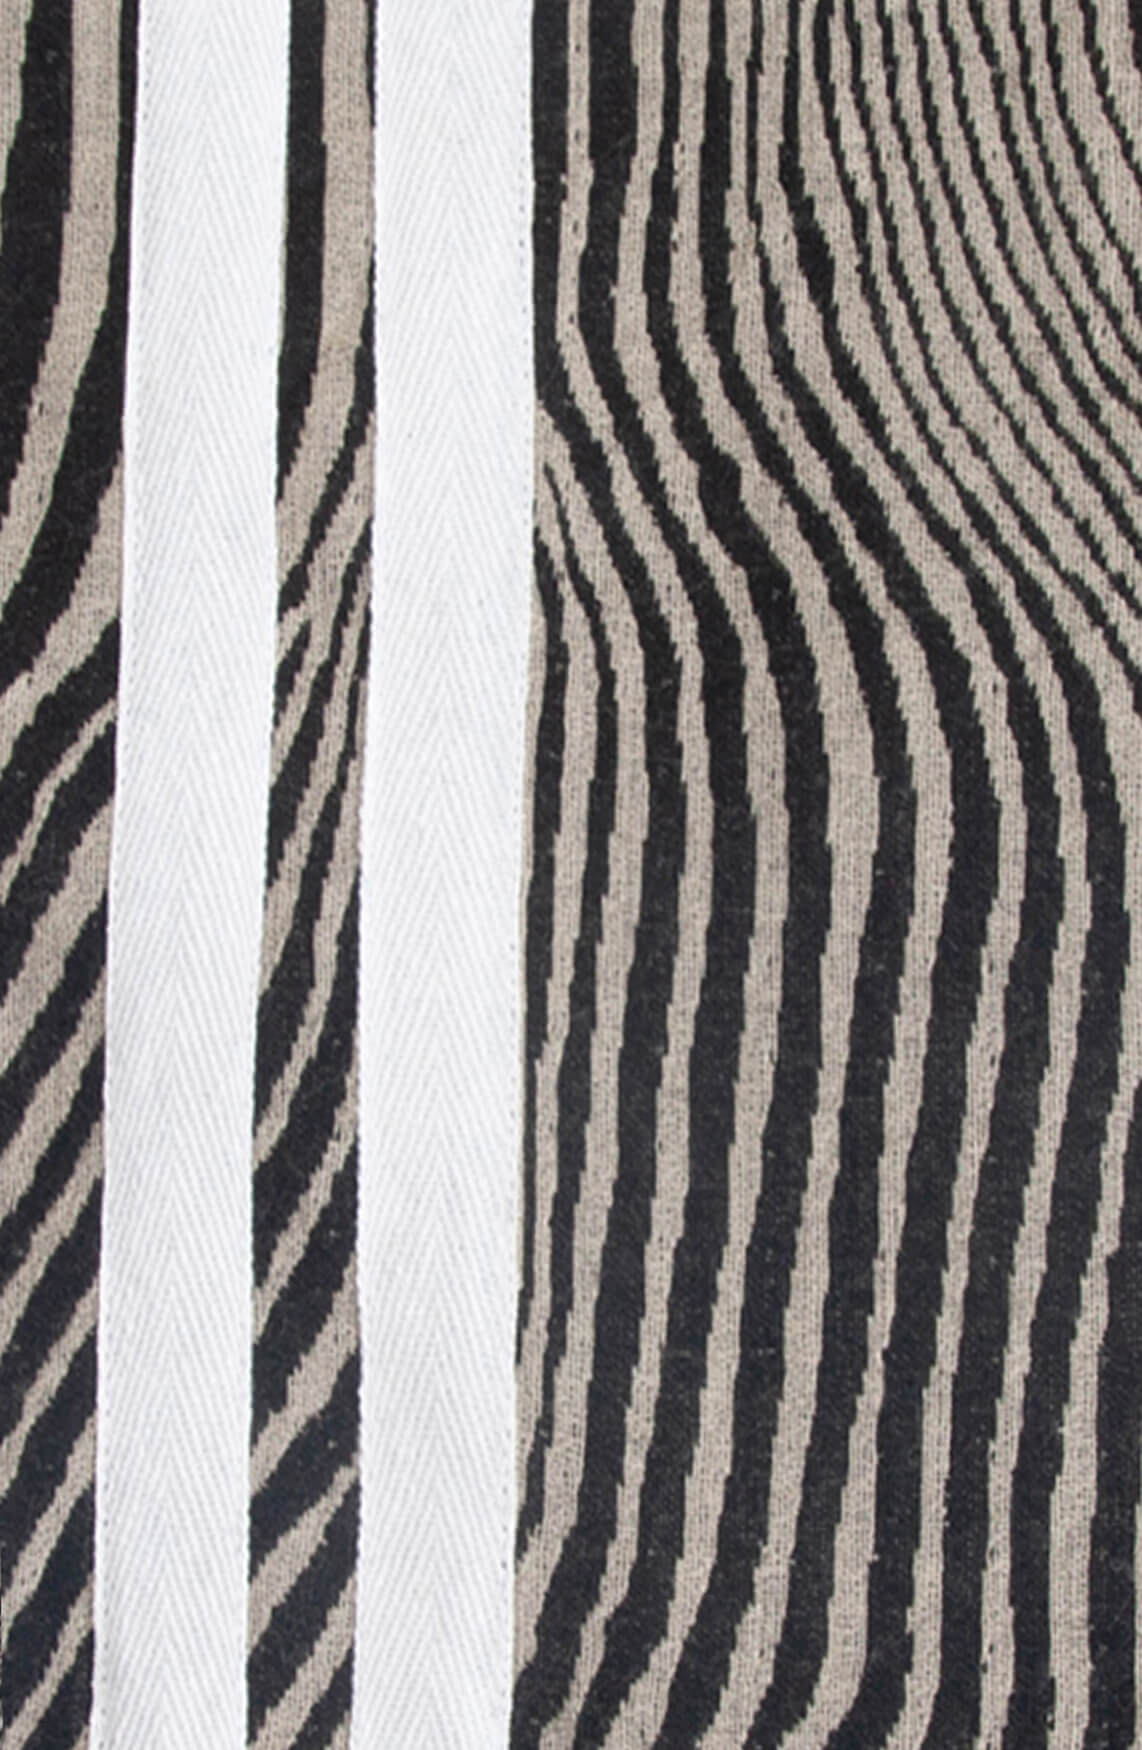 10 Days Dames Zebra shawl zwart